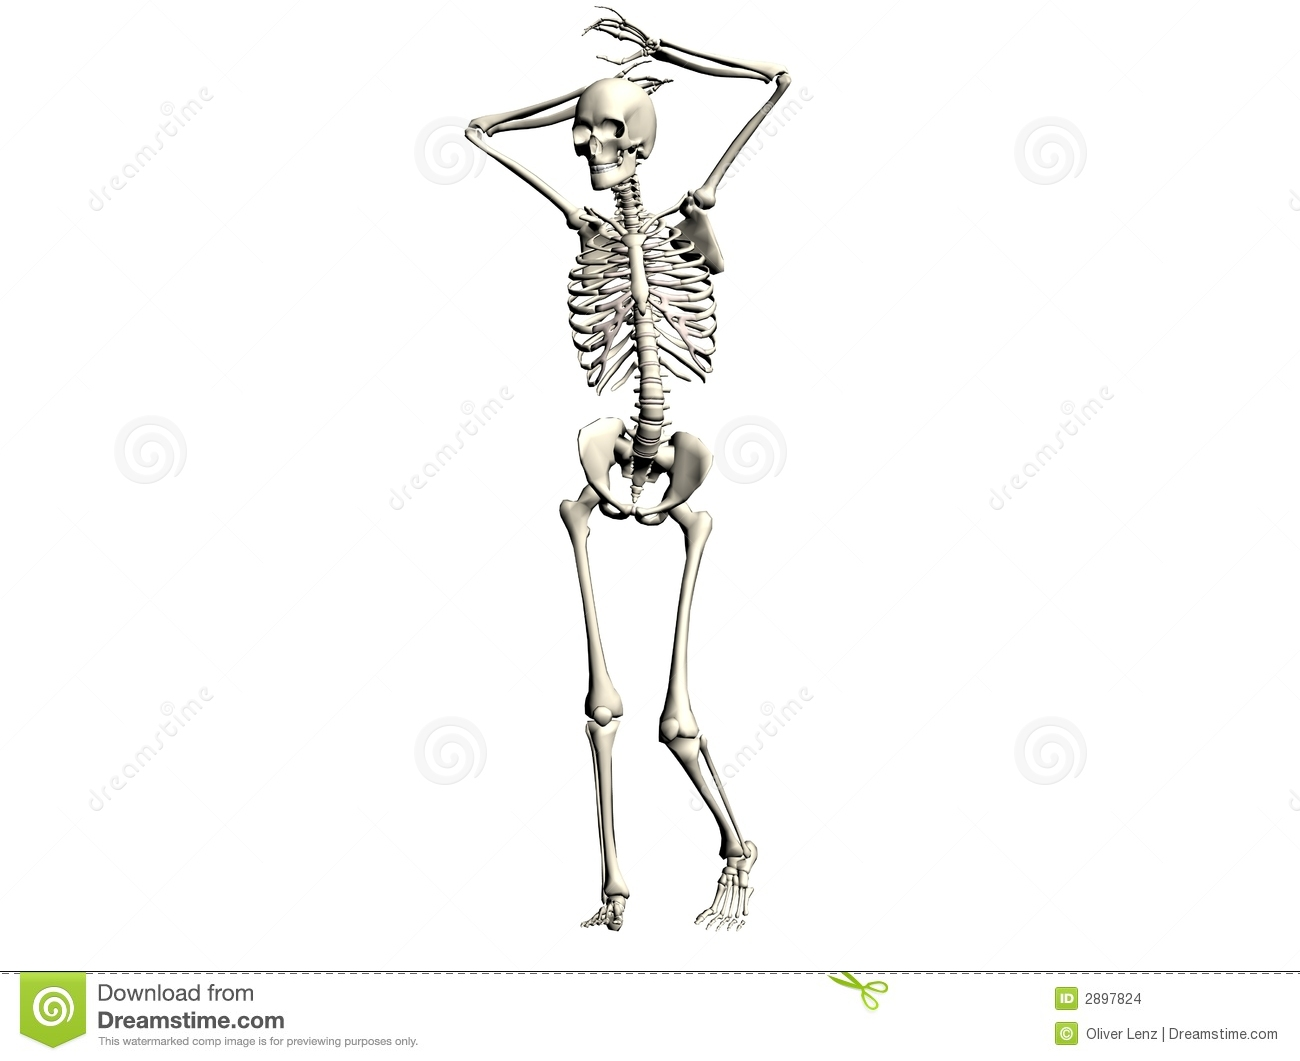 3D illustration of a skeleton, isolated on a white background. .